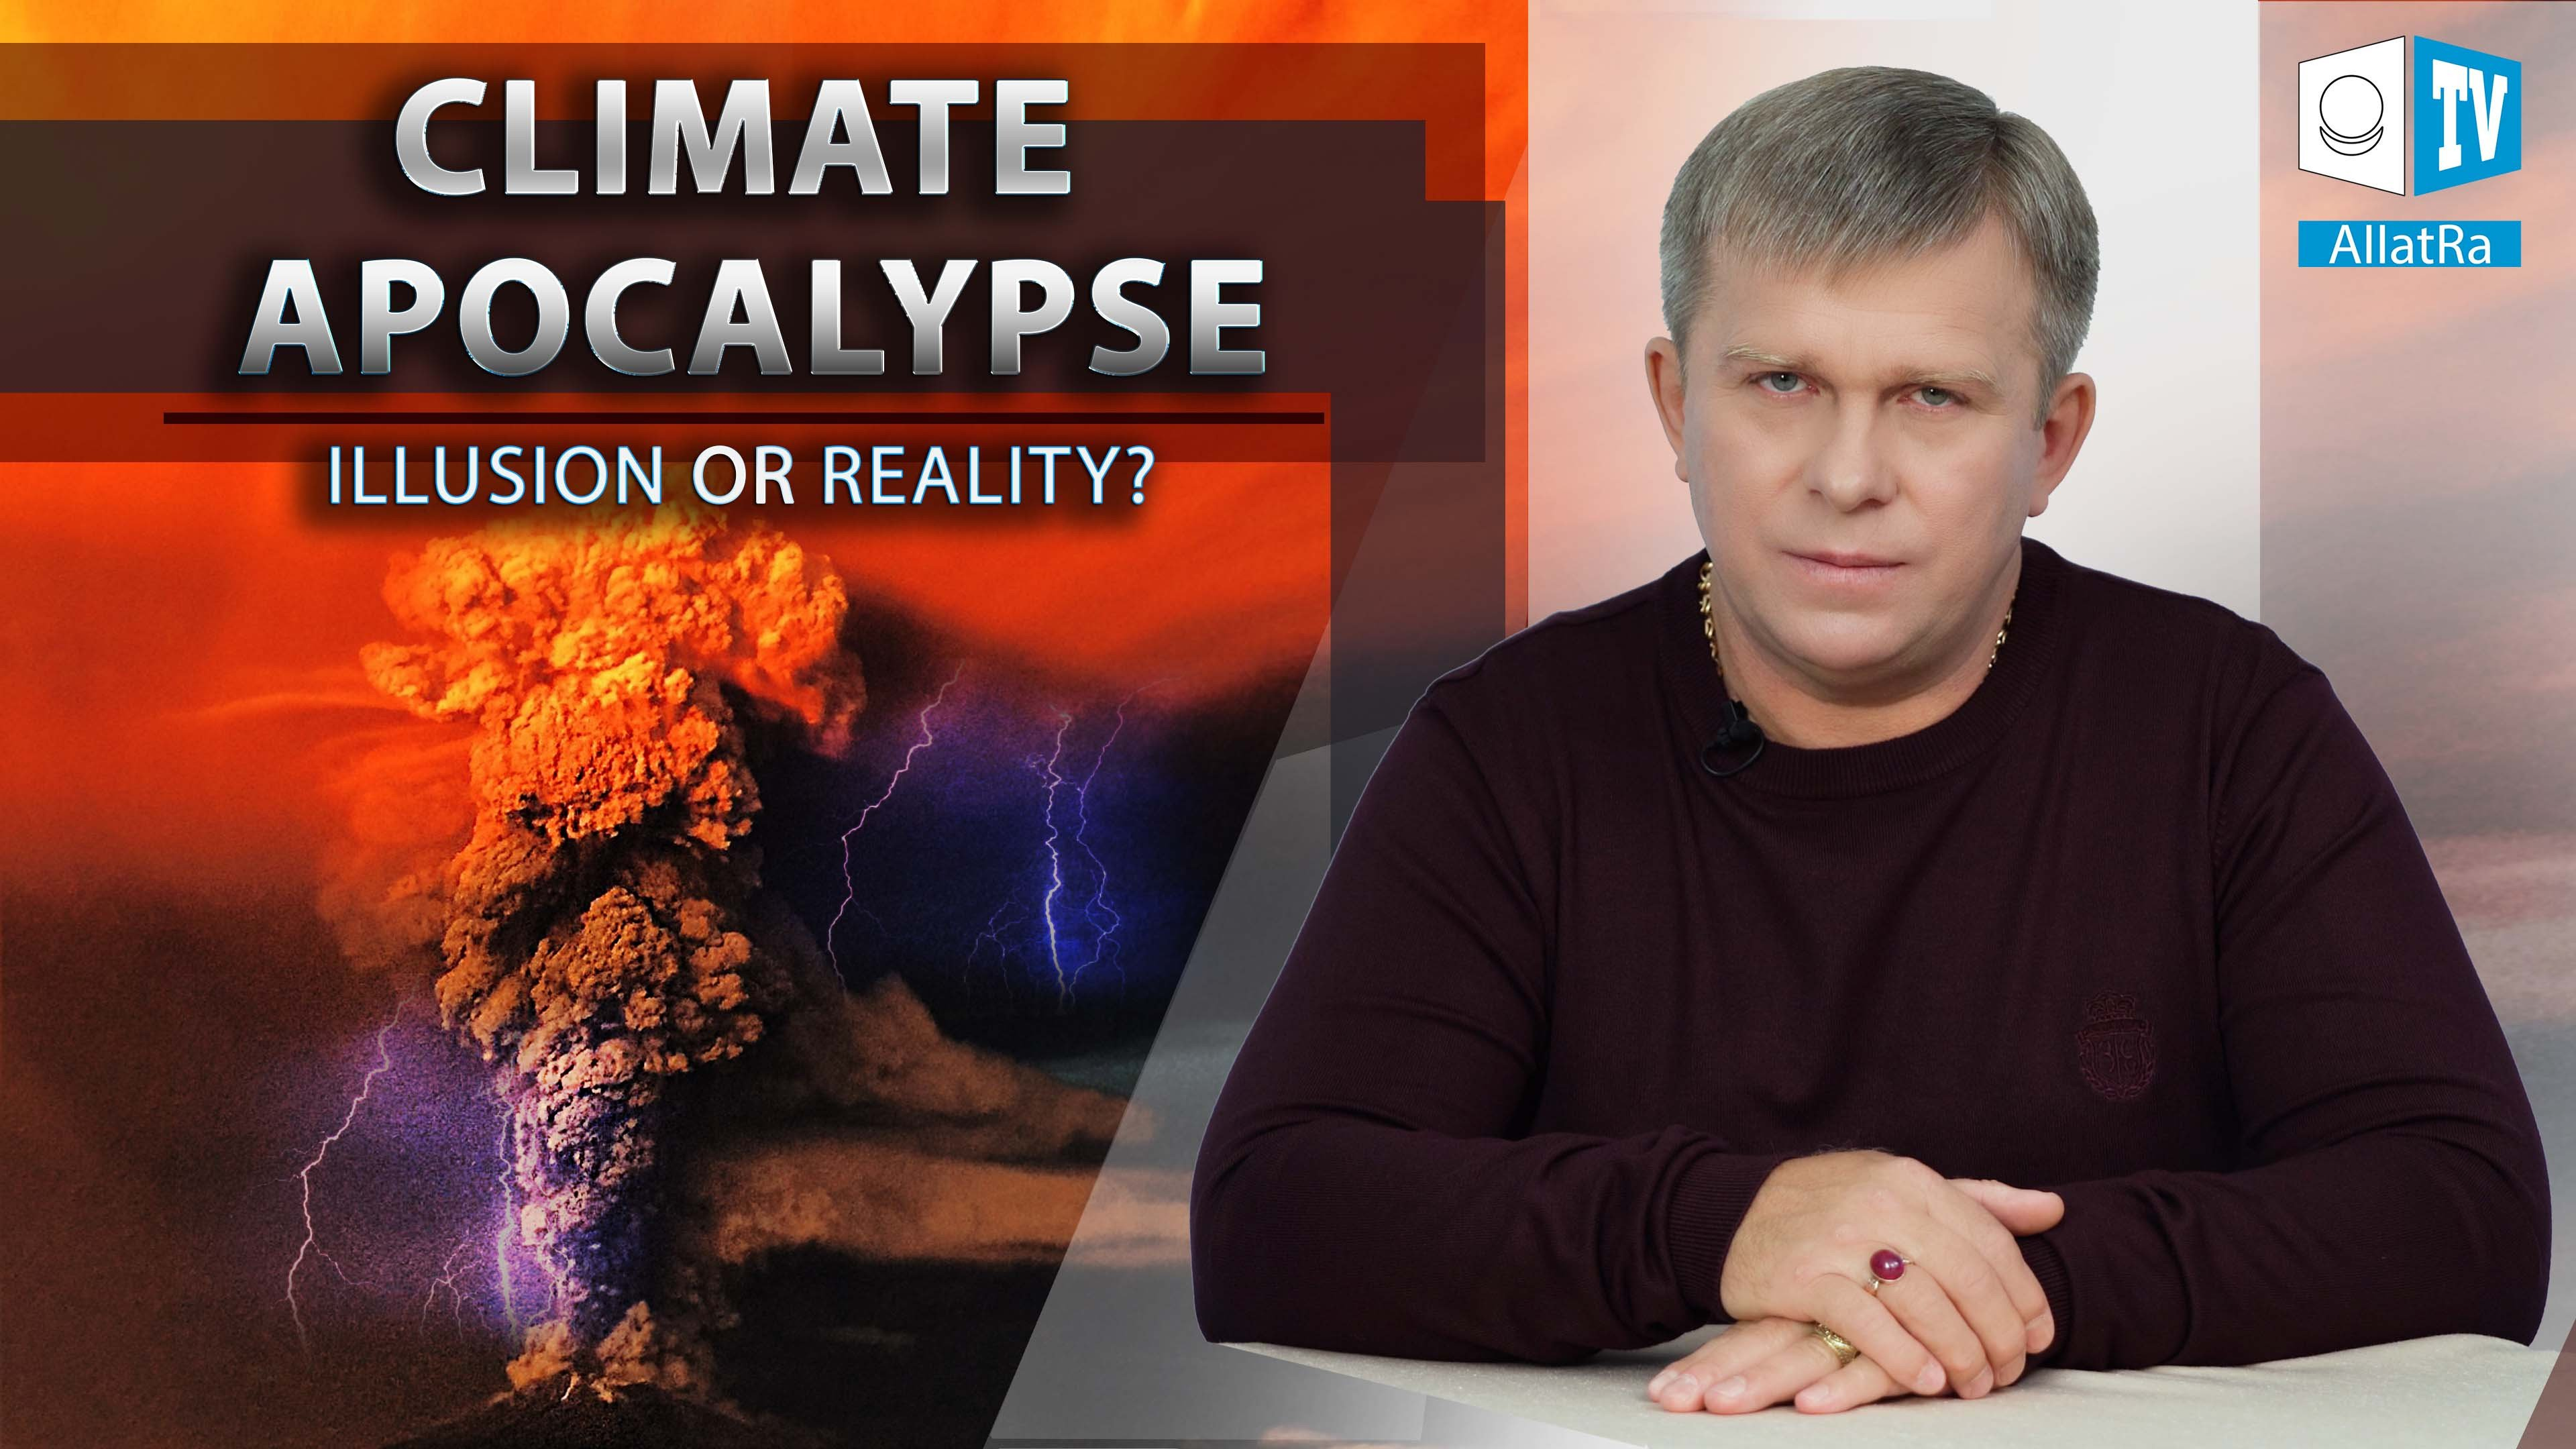 CLIMATE APOCALYPSE: ILLUSION OR REALITY